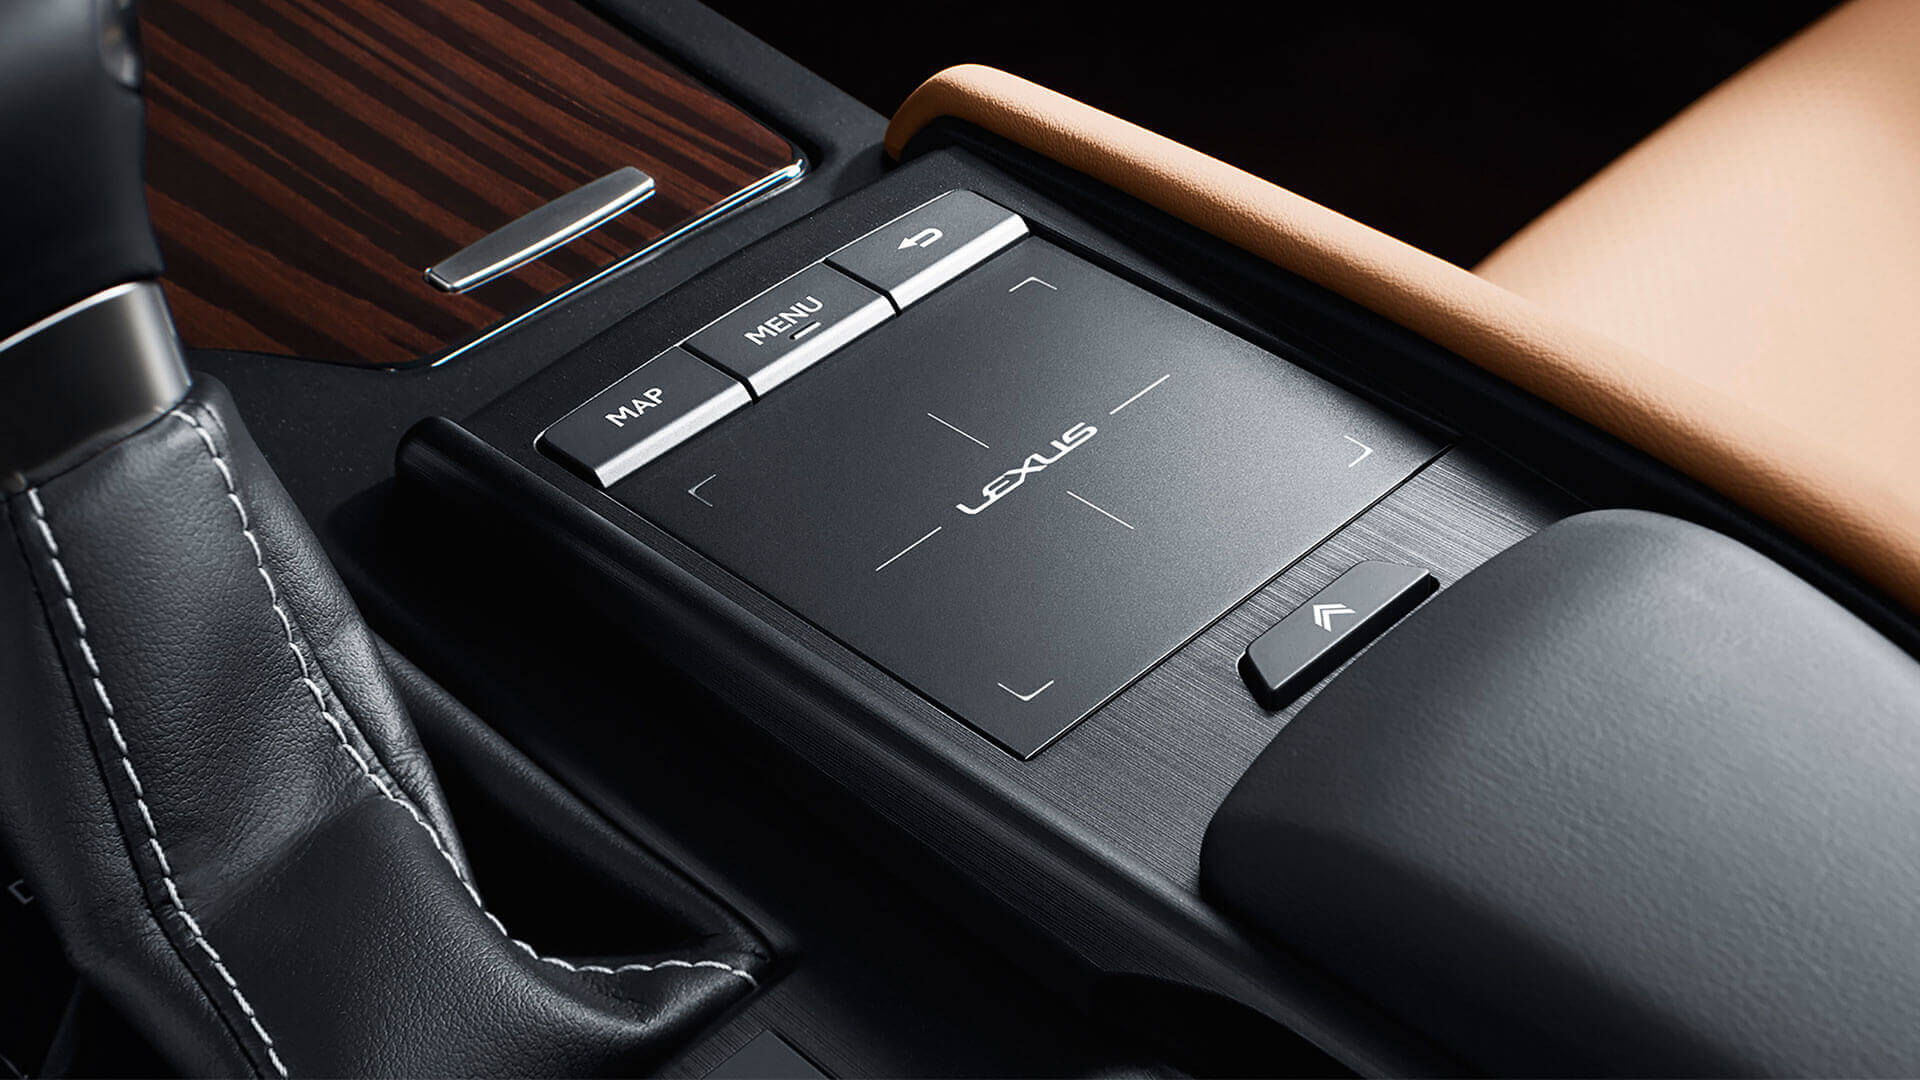 2019 lexus es hybrid experience feature touch pad